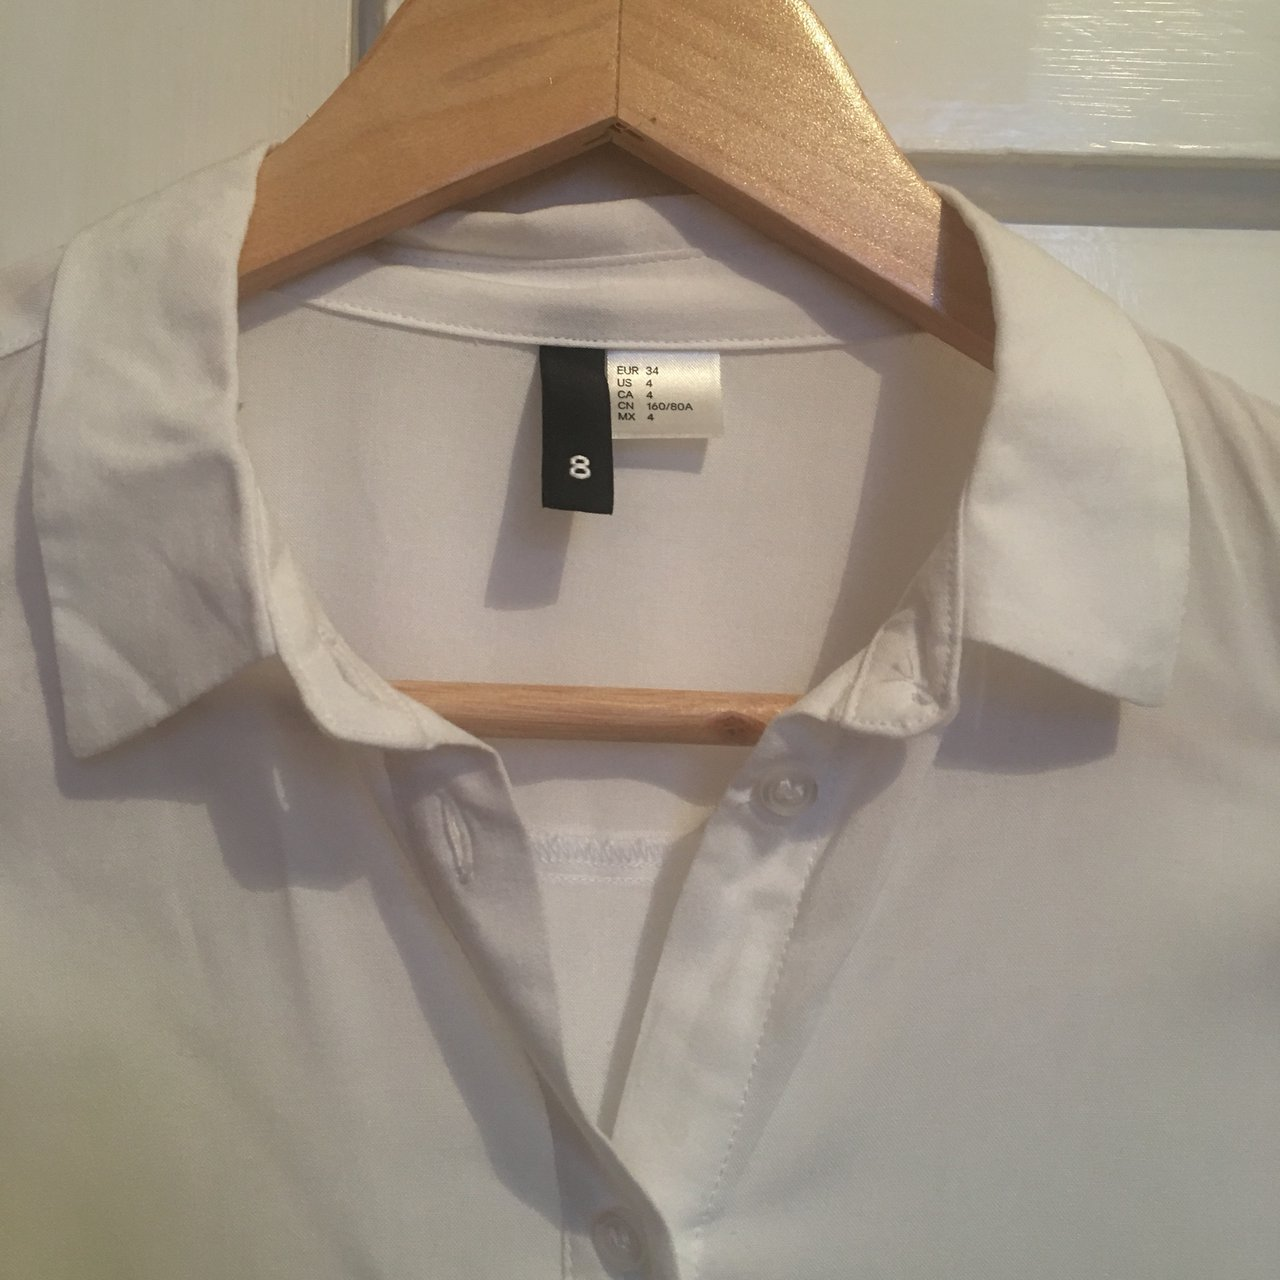 415ff41c6 Oversized white cotton H M blouse shirt. I ve worn this once - Depop